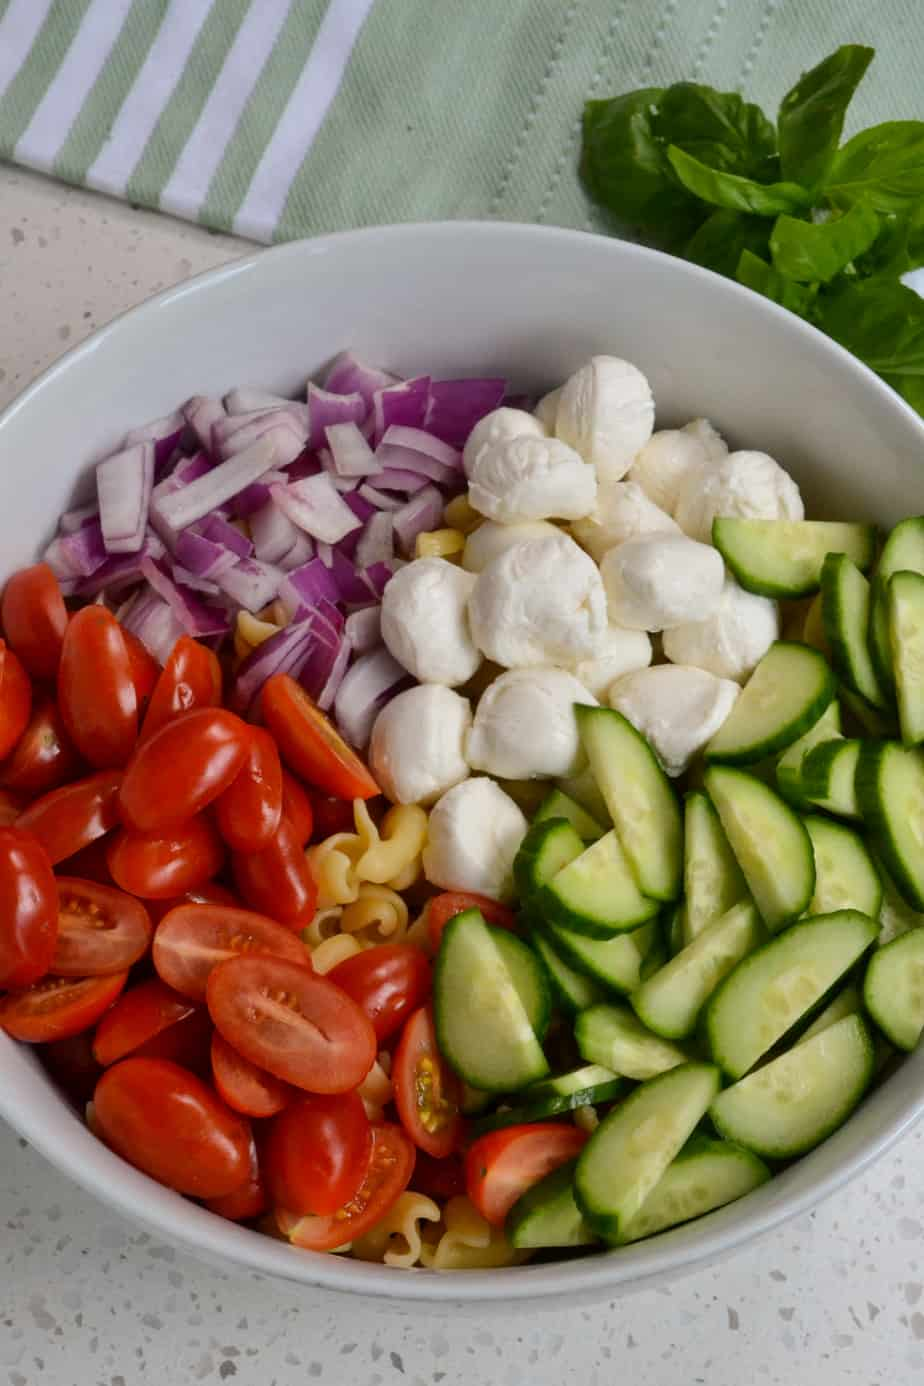 Some of the ingredients for the pasta salad in a bowl.